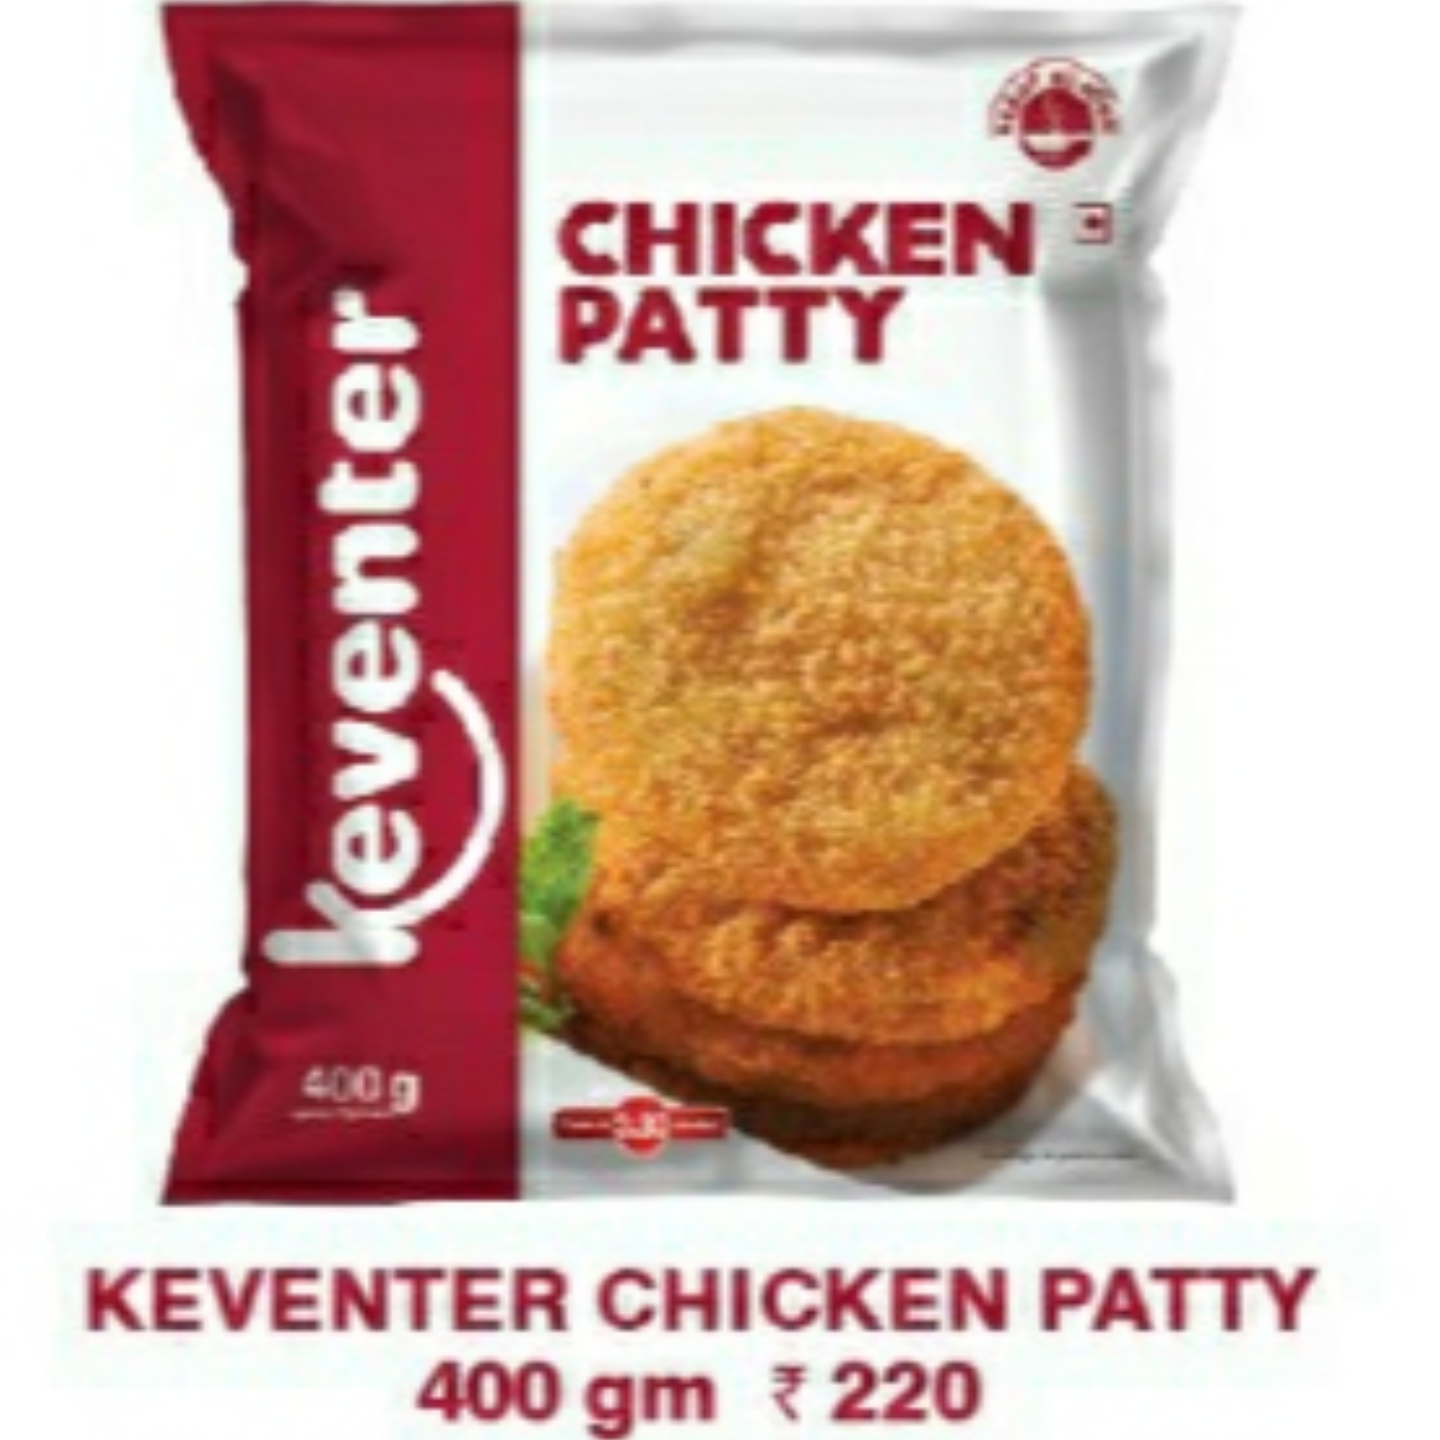 Chicken Patty 400gms